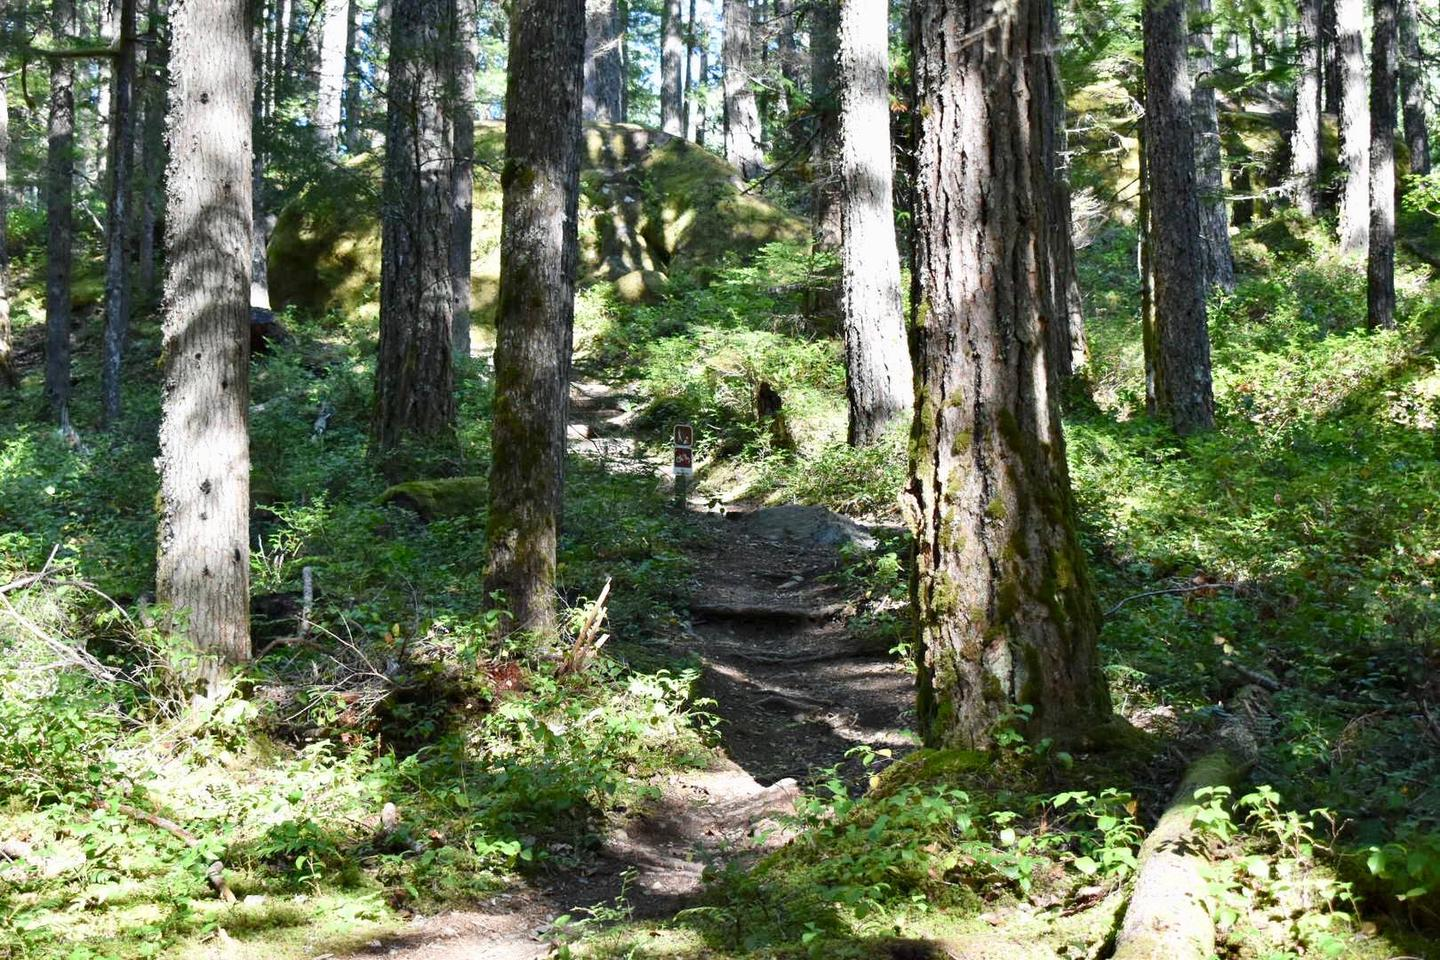 A short trail next to the campsite leads to the popular Silver Falls hiking trail.